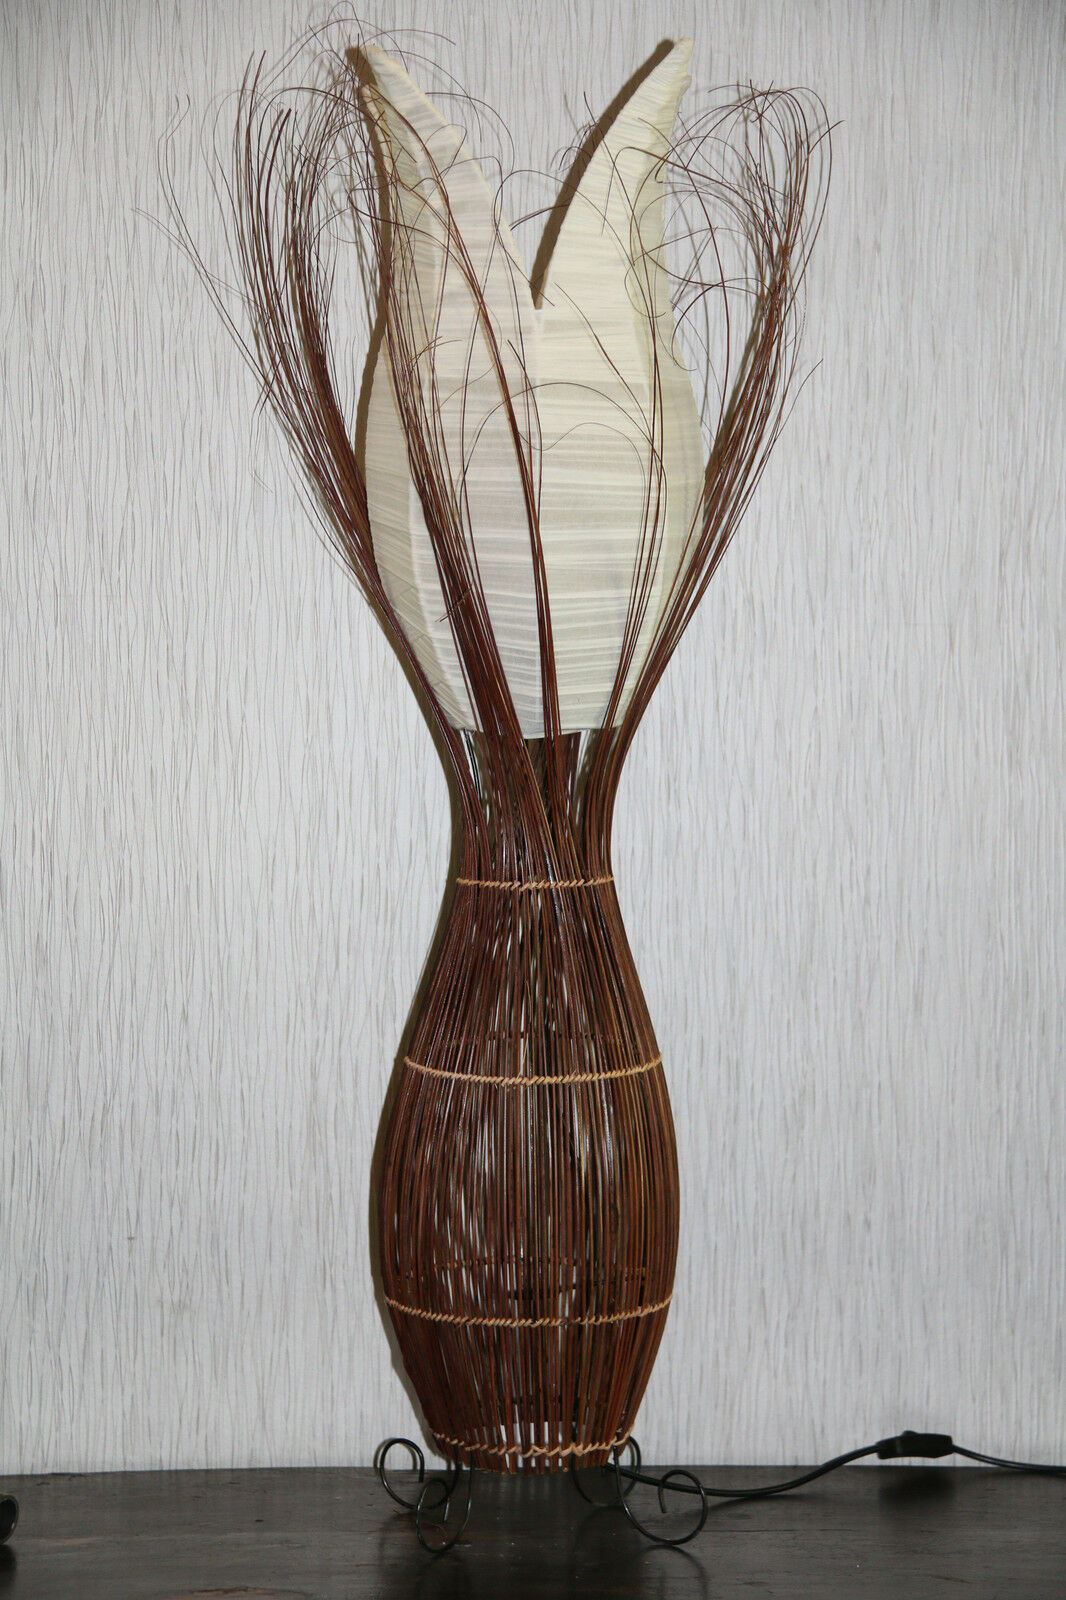 NEW Balinese Lotus Lamps 3 Colour Choices!! **SALE**SALE**SALE** Stunning Lamp!!